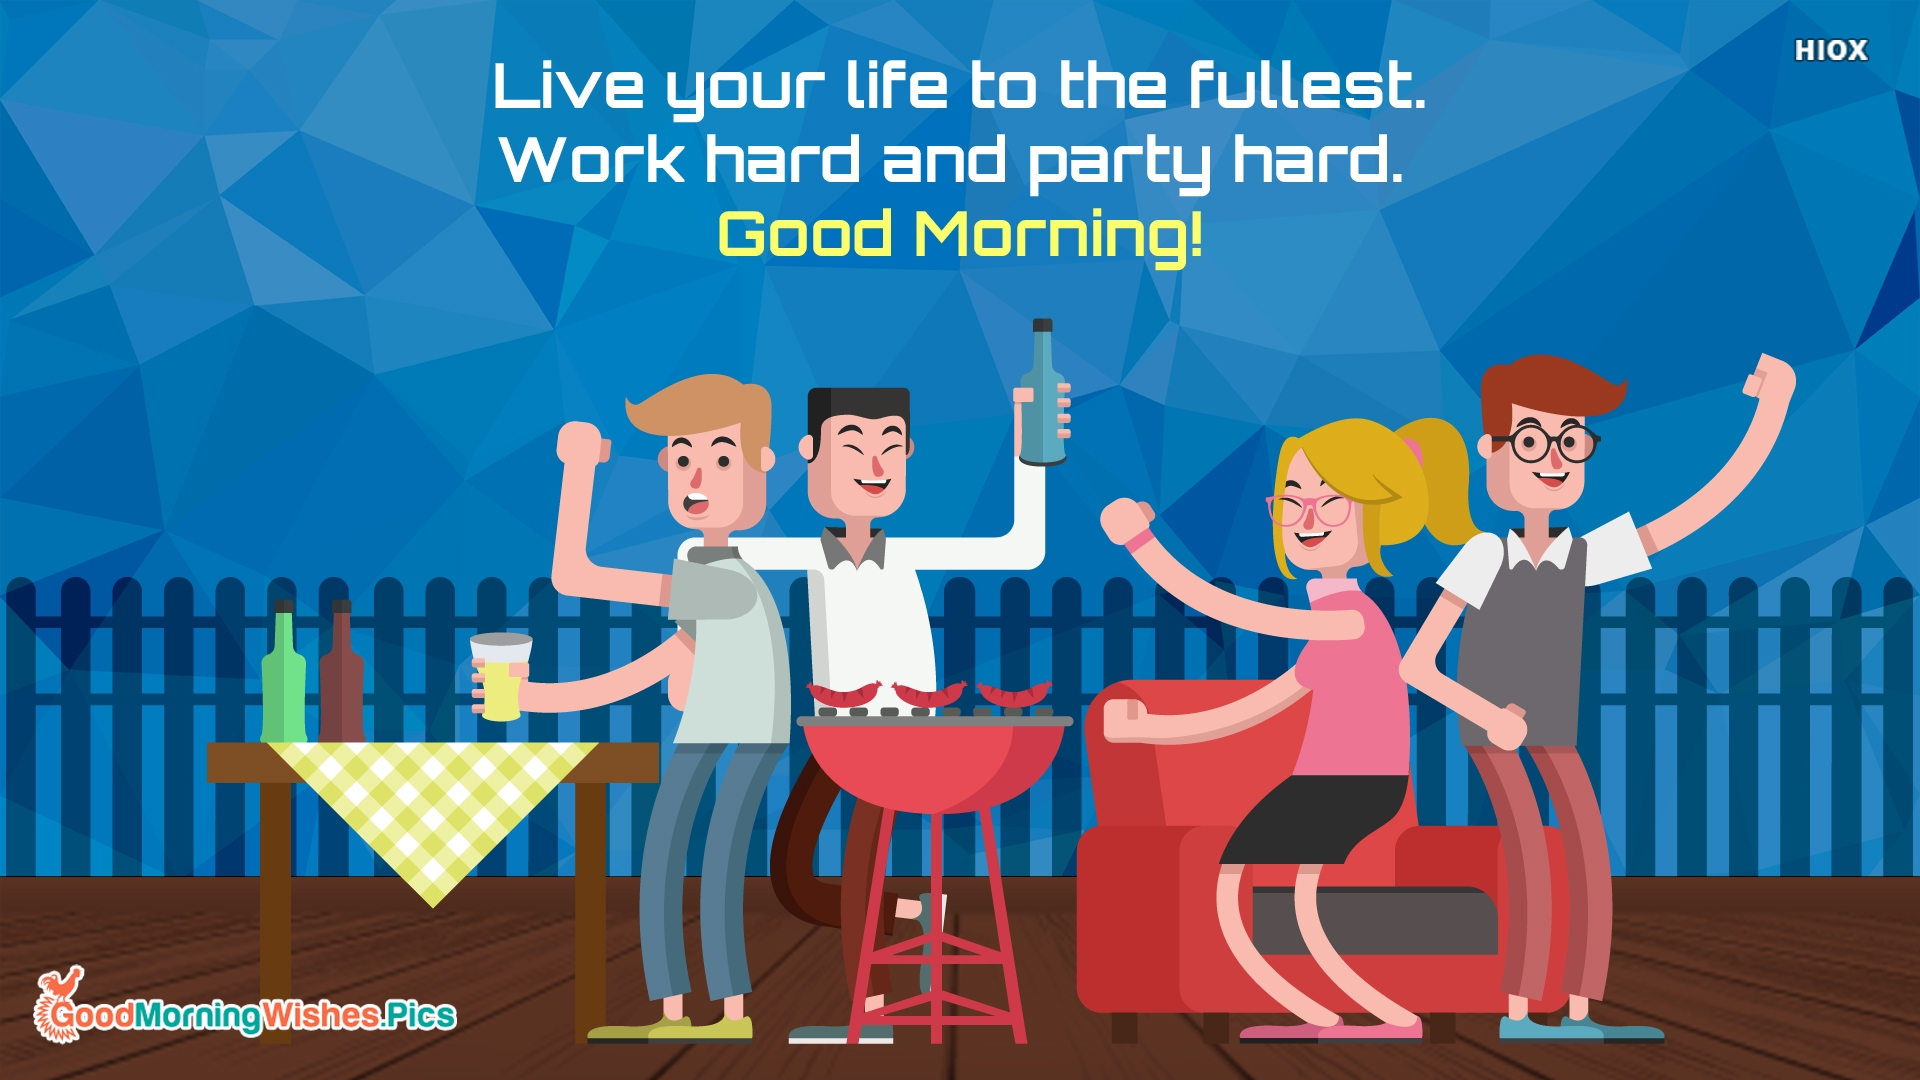 Live Your Life To The Fullest. Work Hard and Party Hard. Good Morning!